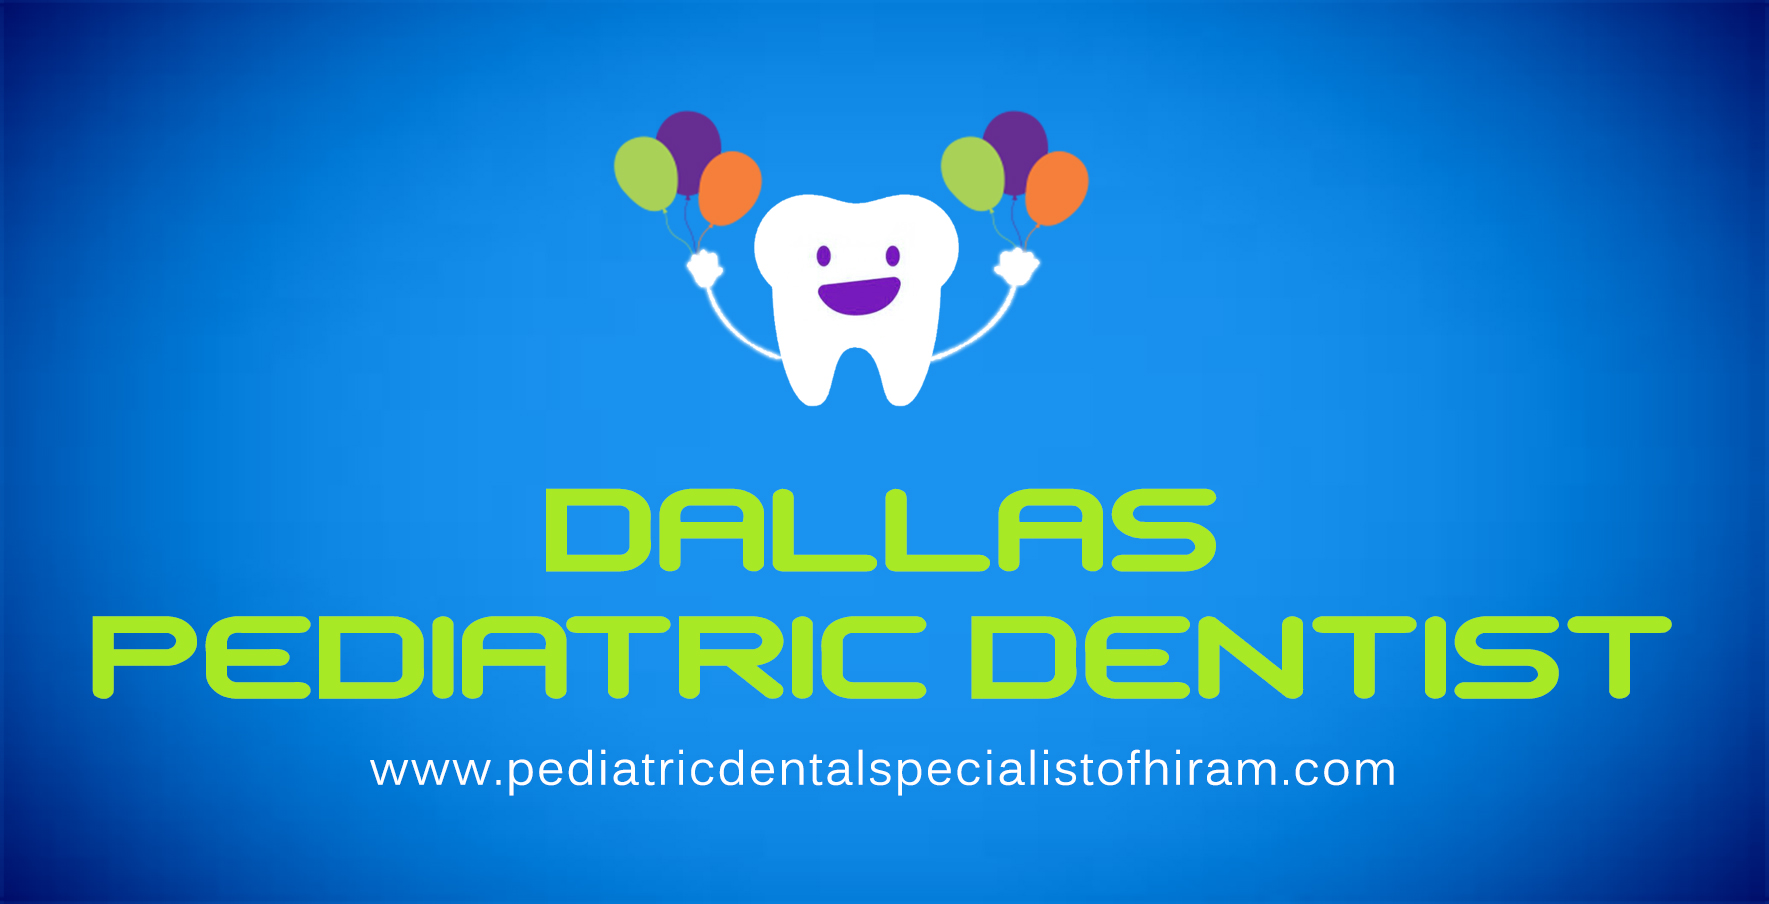 Emergency Dentist Open 24 HoursPediatric Dental Specialist